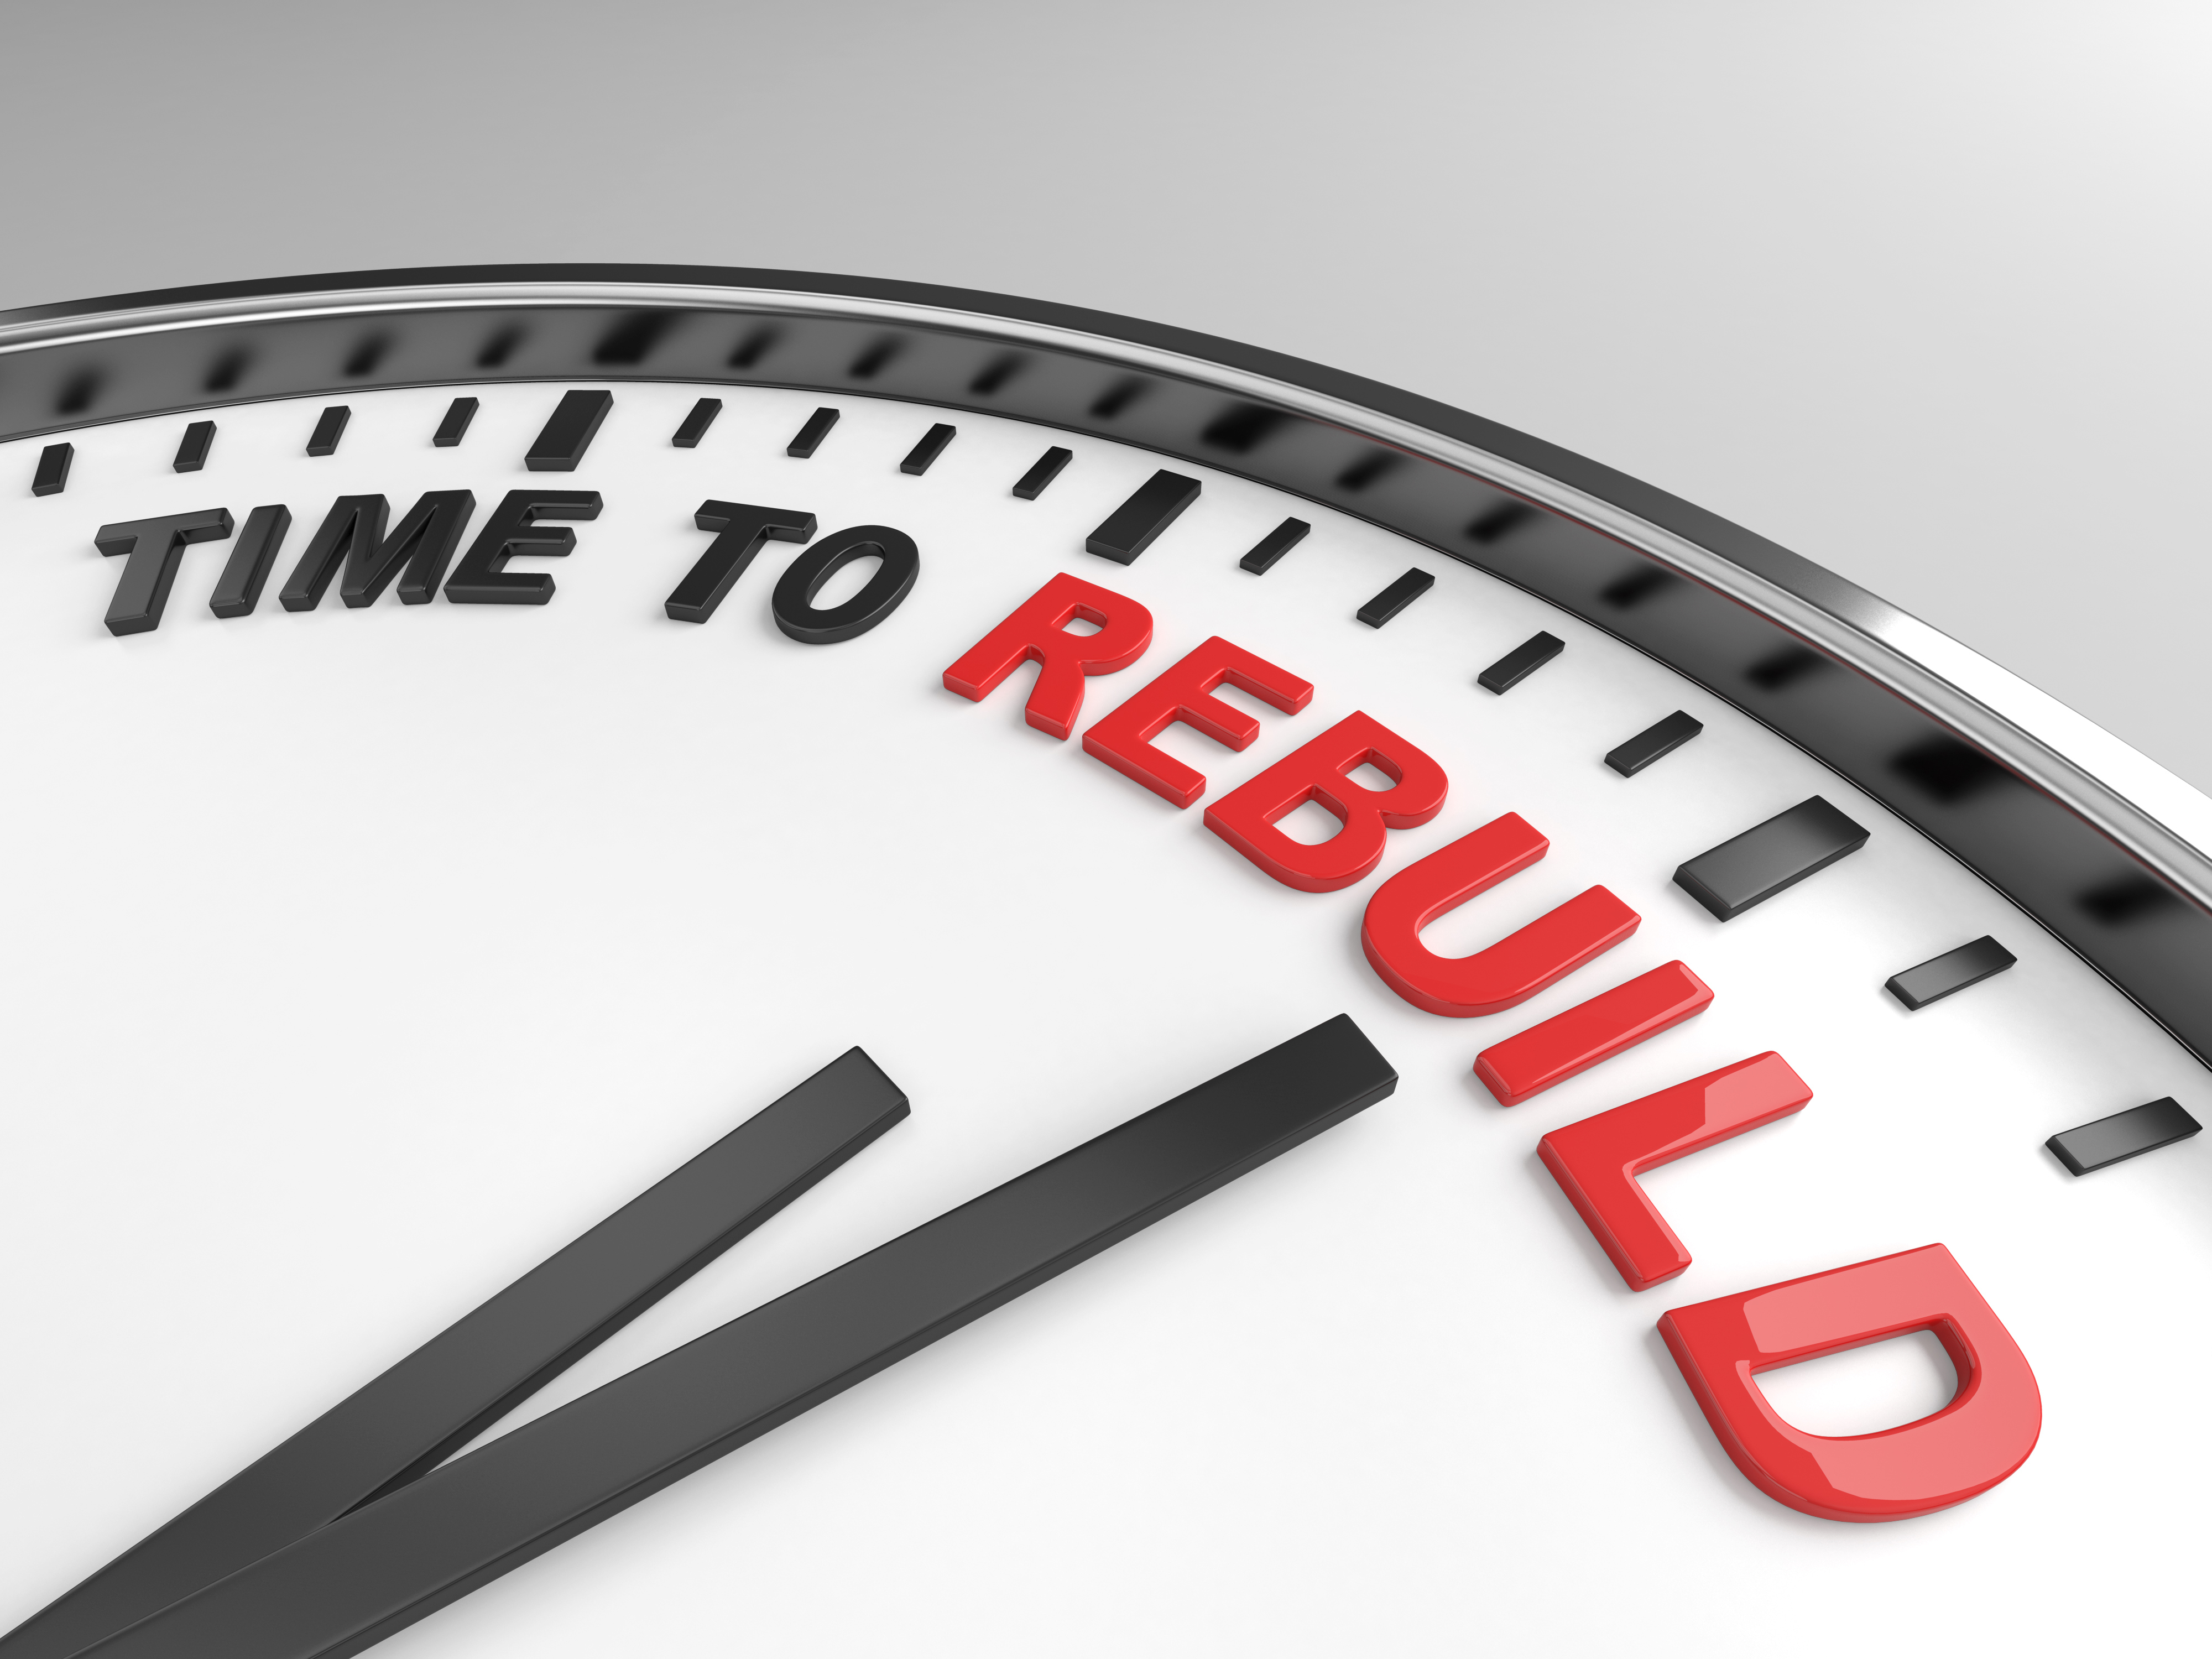 Rebuilding Credit Tips: How Long Does Past Bad Credit Stay on Your Credit Report?